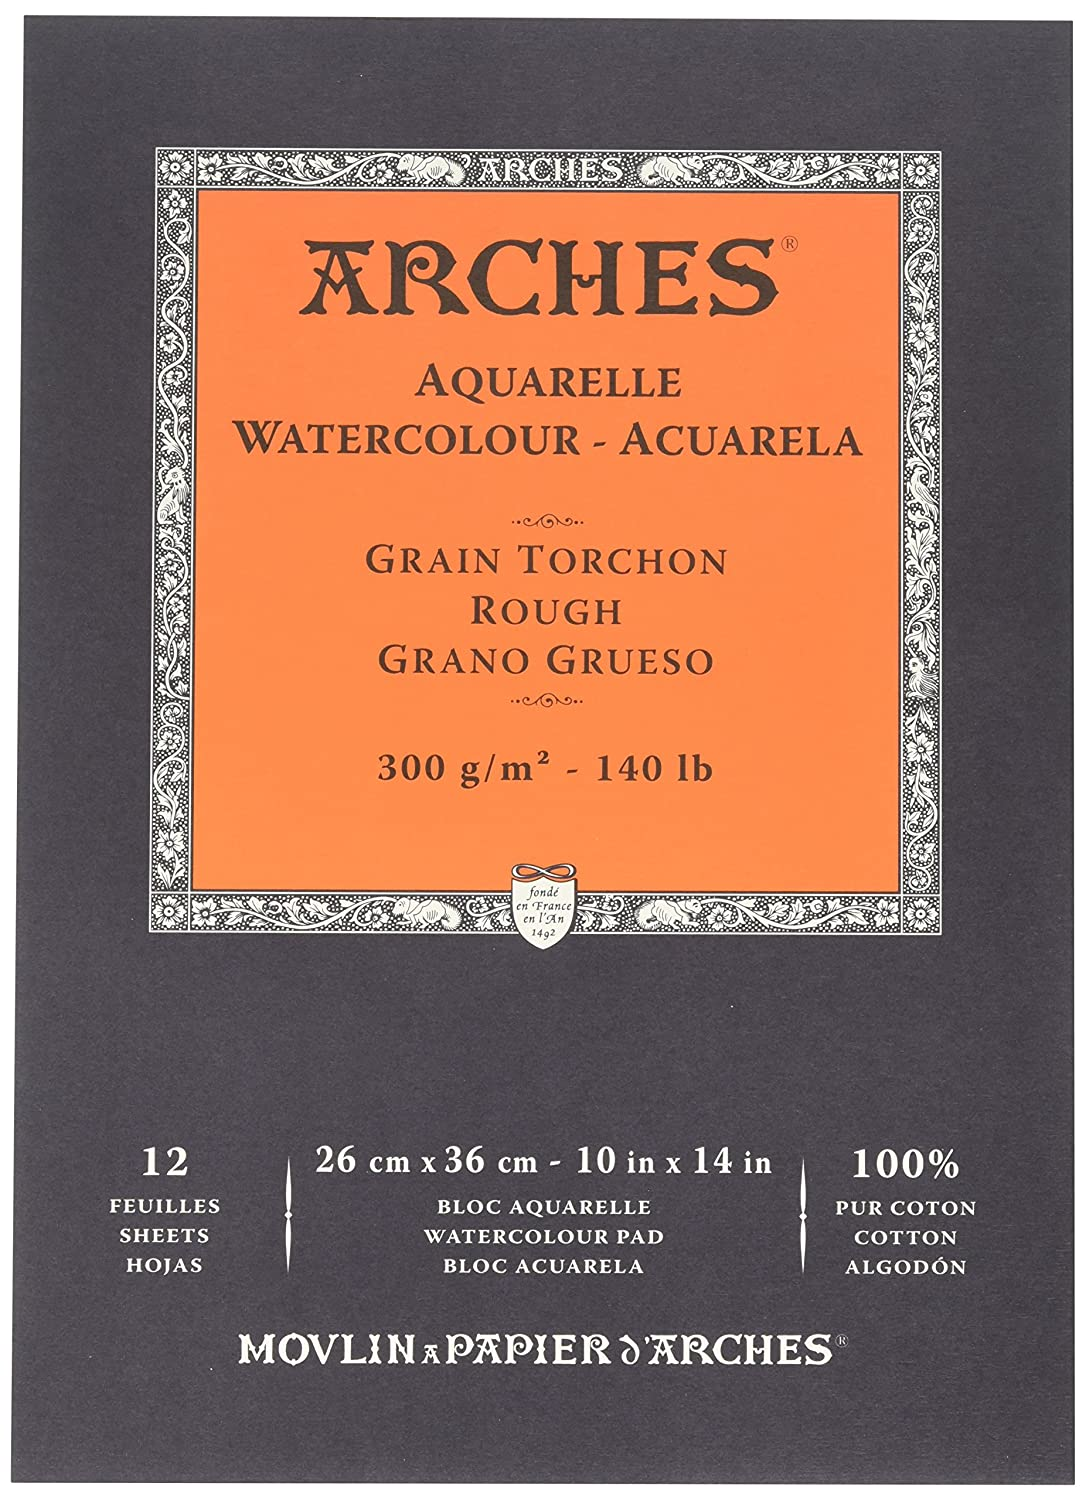 Winsor & Newton 1795103 Arches Watercolor Hot Pressed Paper Pad, 10 x 14 10 x 14